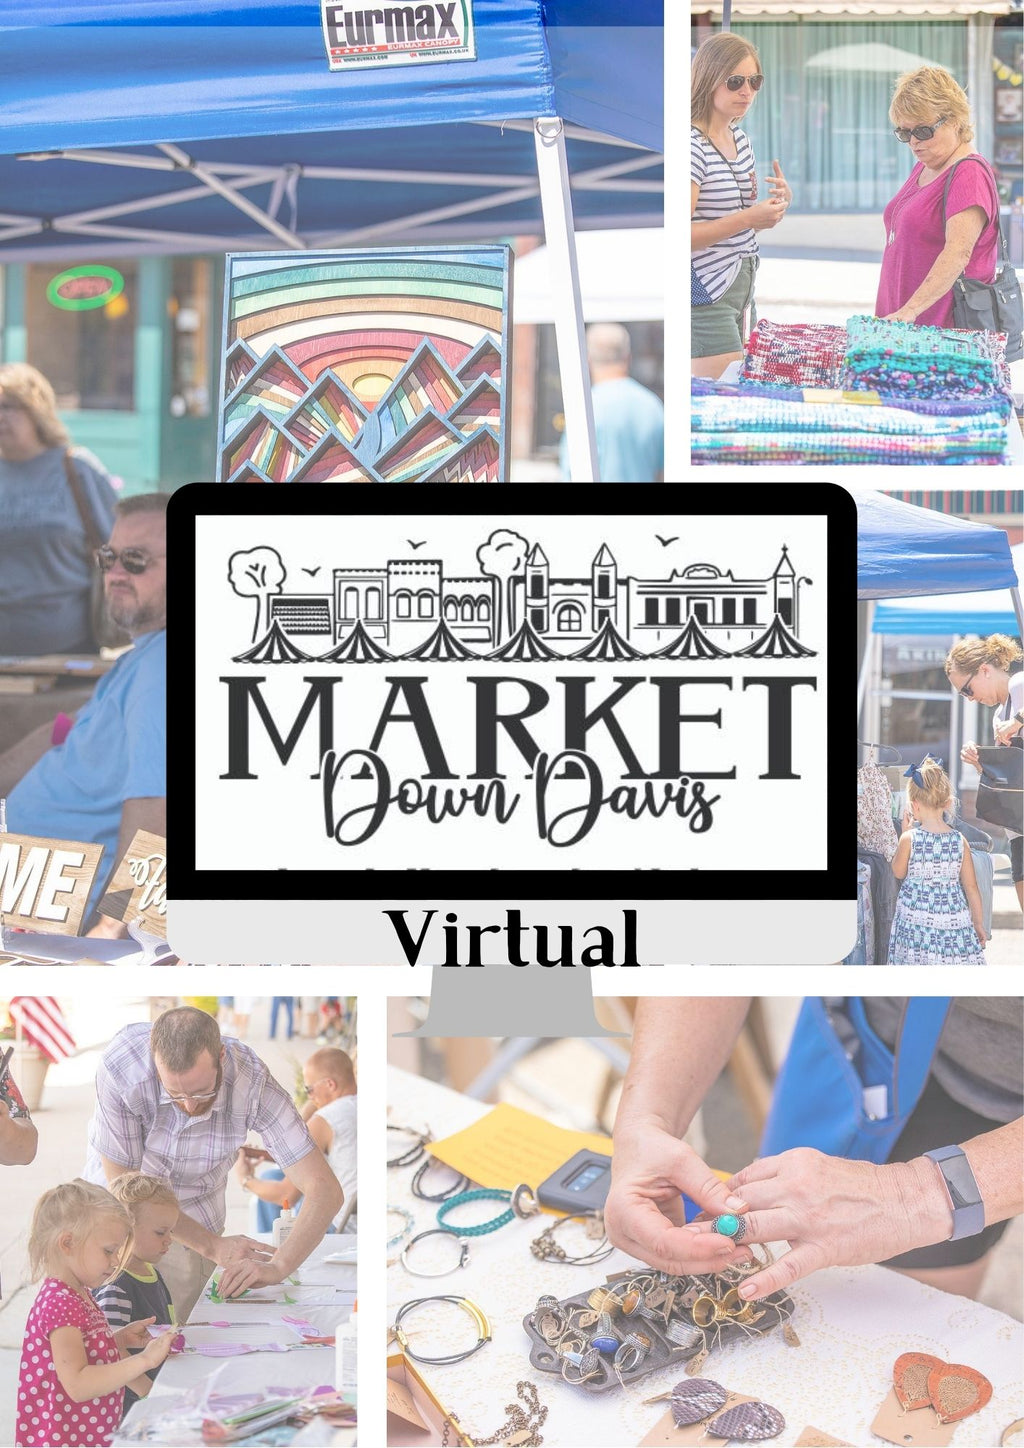 Calling all vendors for Fall 2020 Market Down Davis